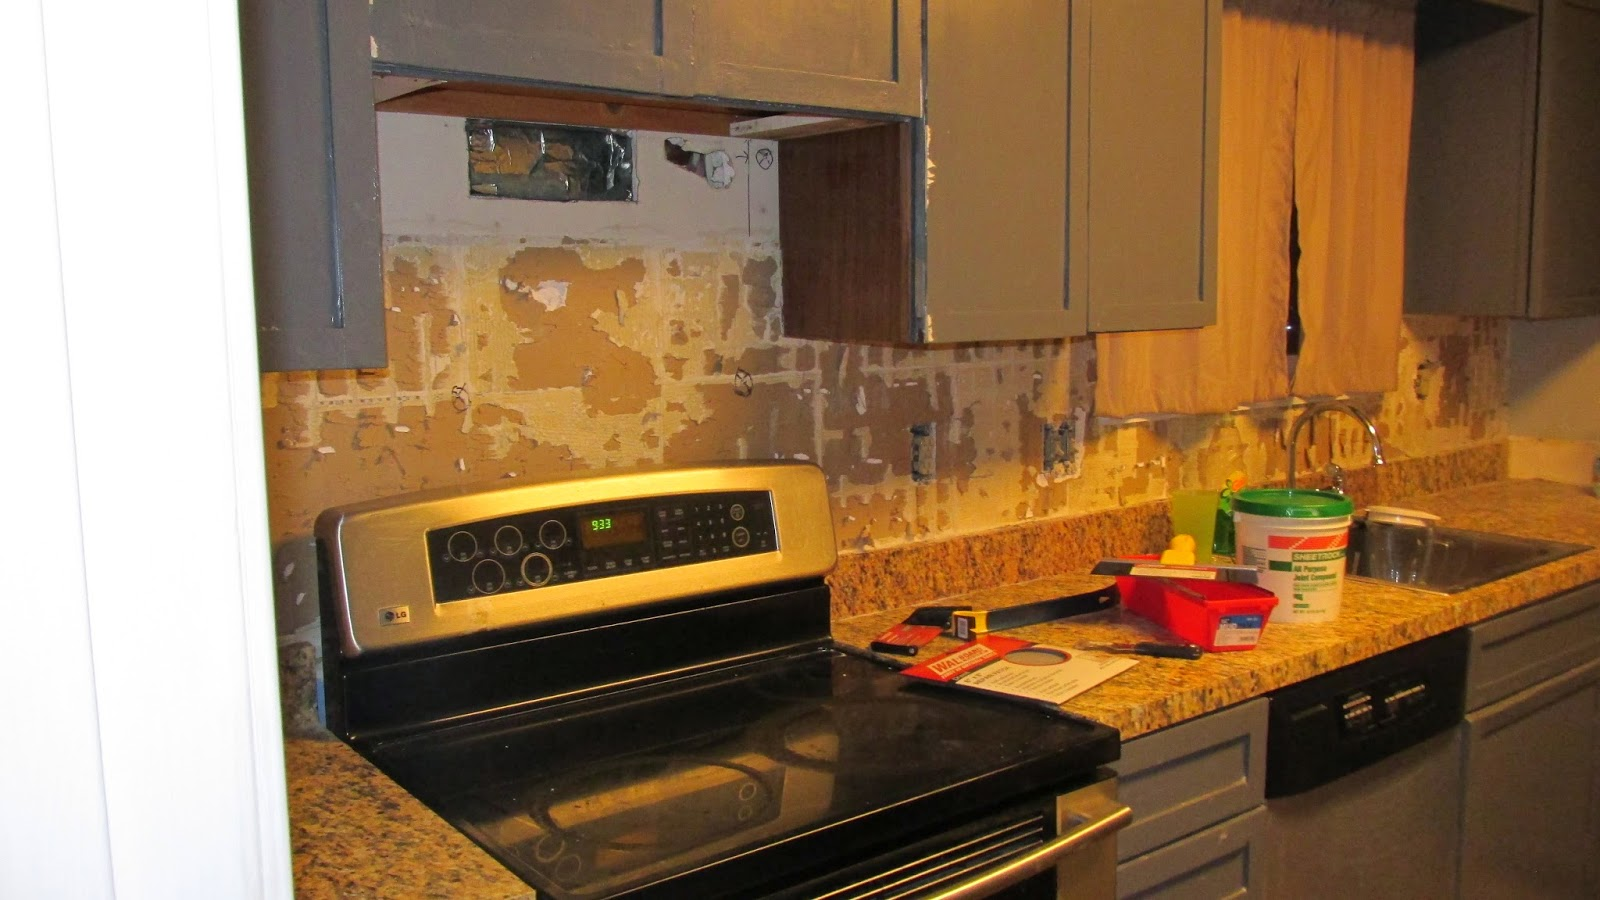 How To Repair Drywall After Removing Tile Prepare For Tiling